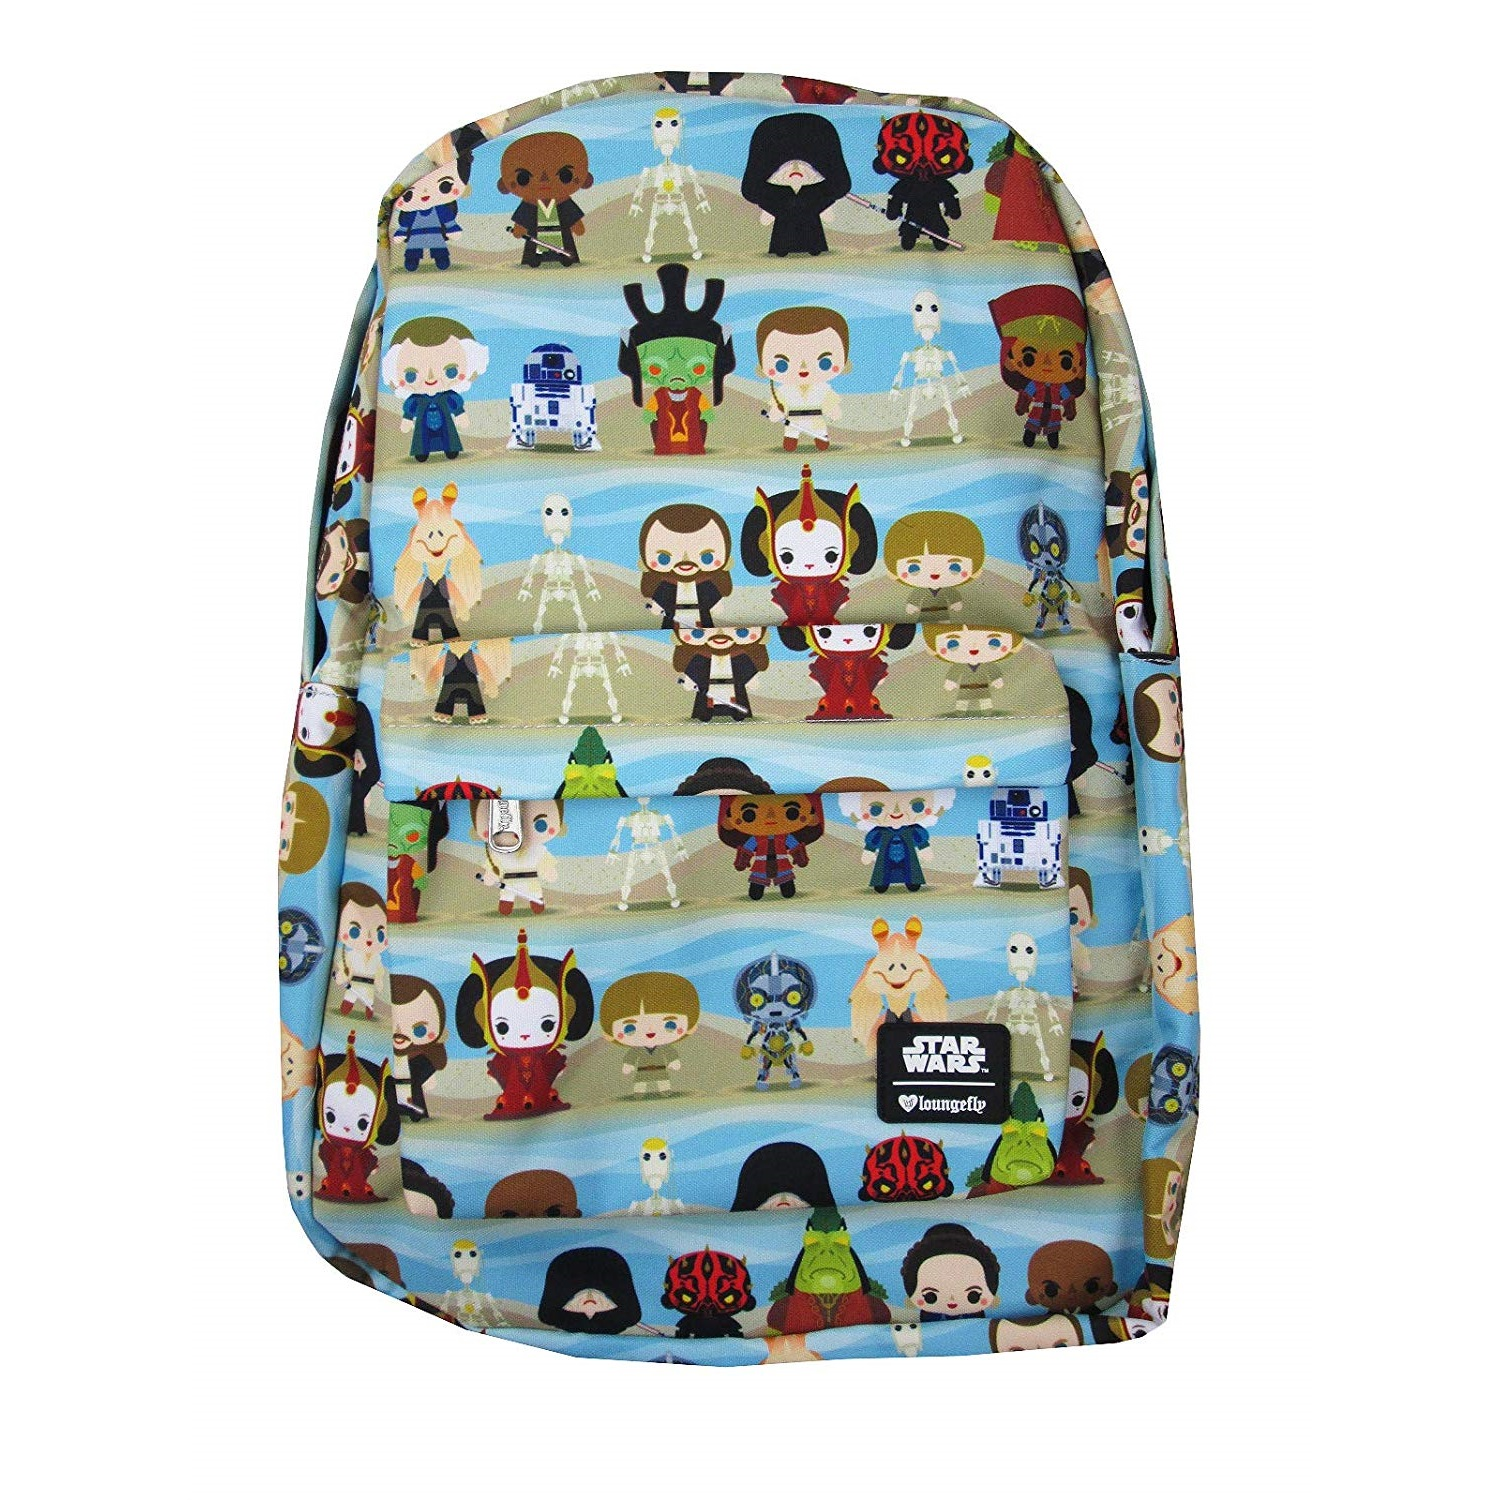 Loungefly x Star Wars The Phantom Menace Chibi Backpack on Amazon